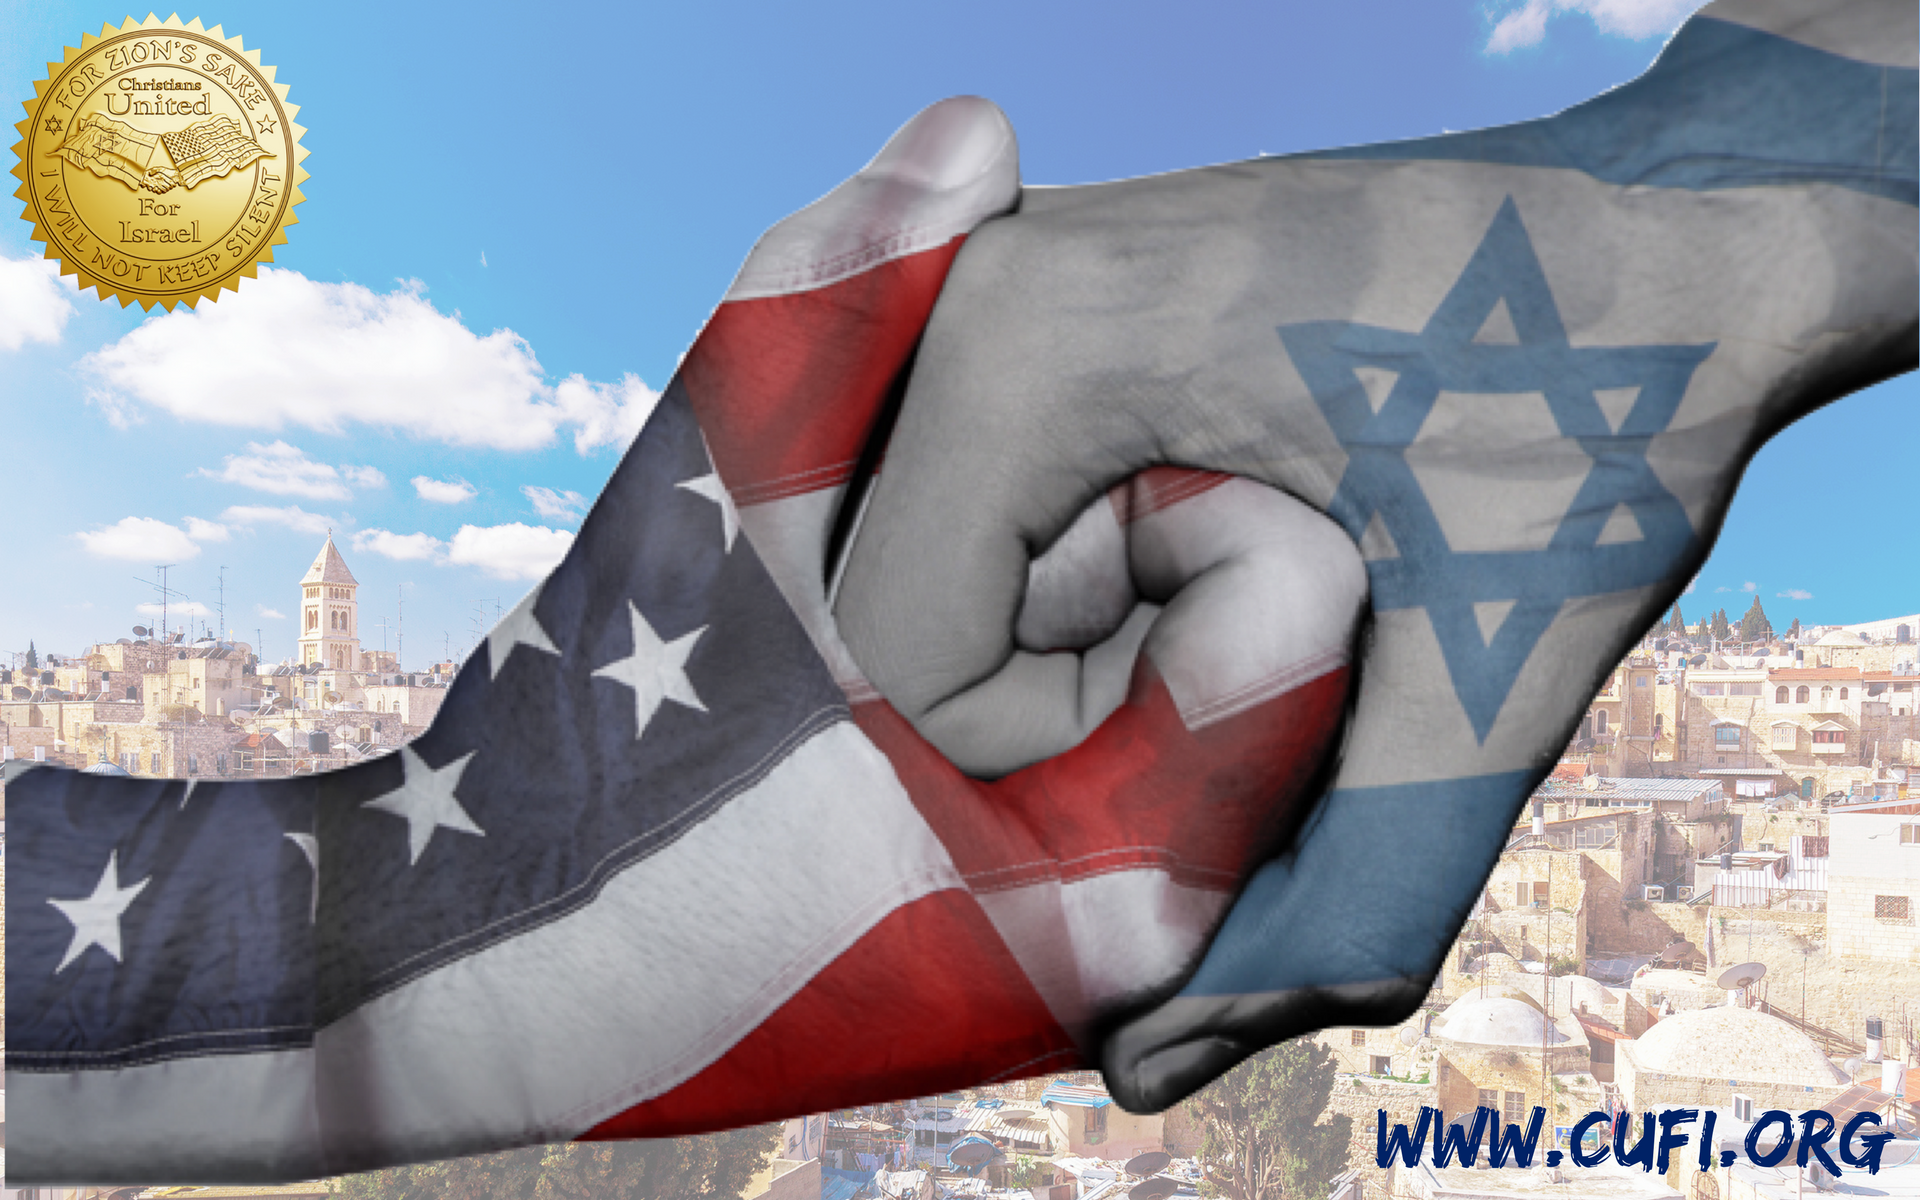 Wallpapers   Christians United for Israel 1920x1200